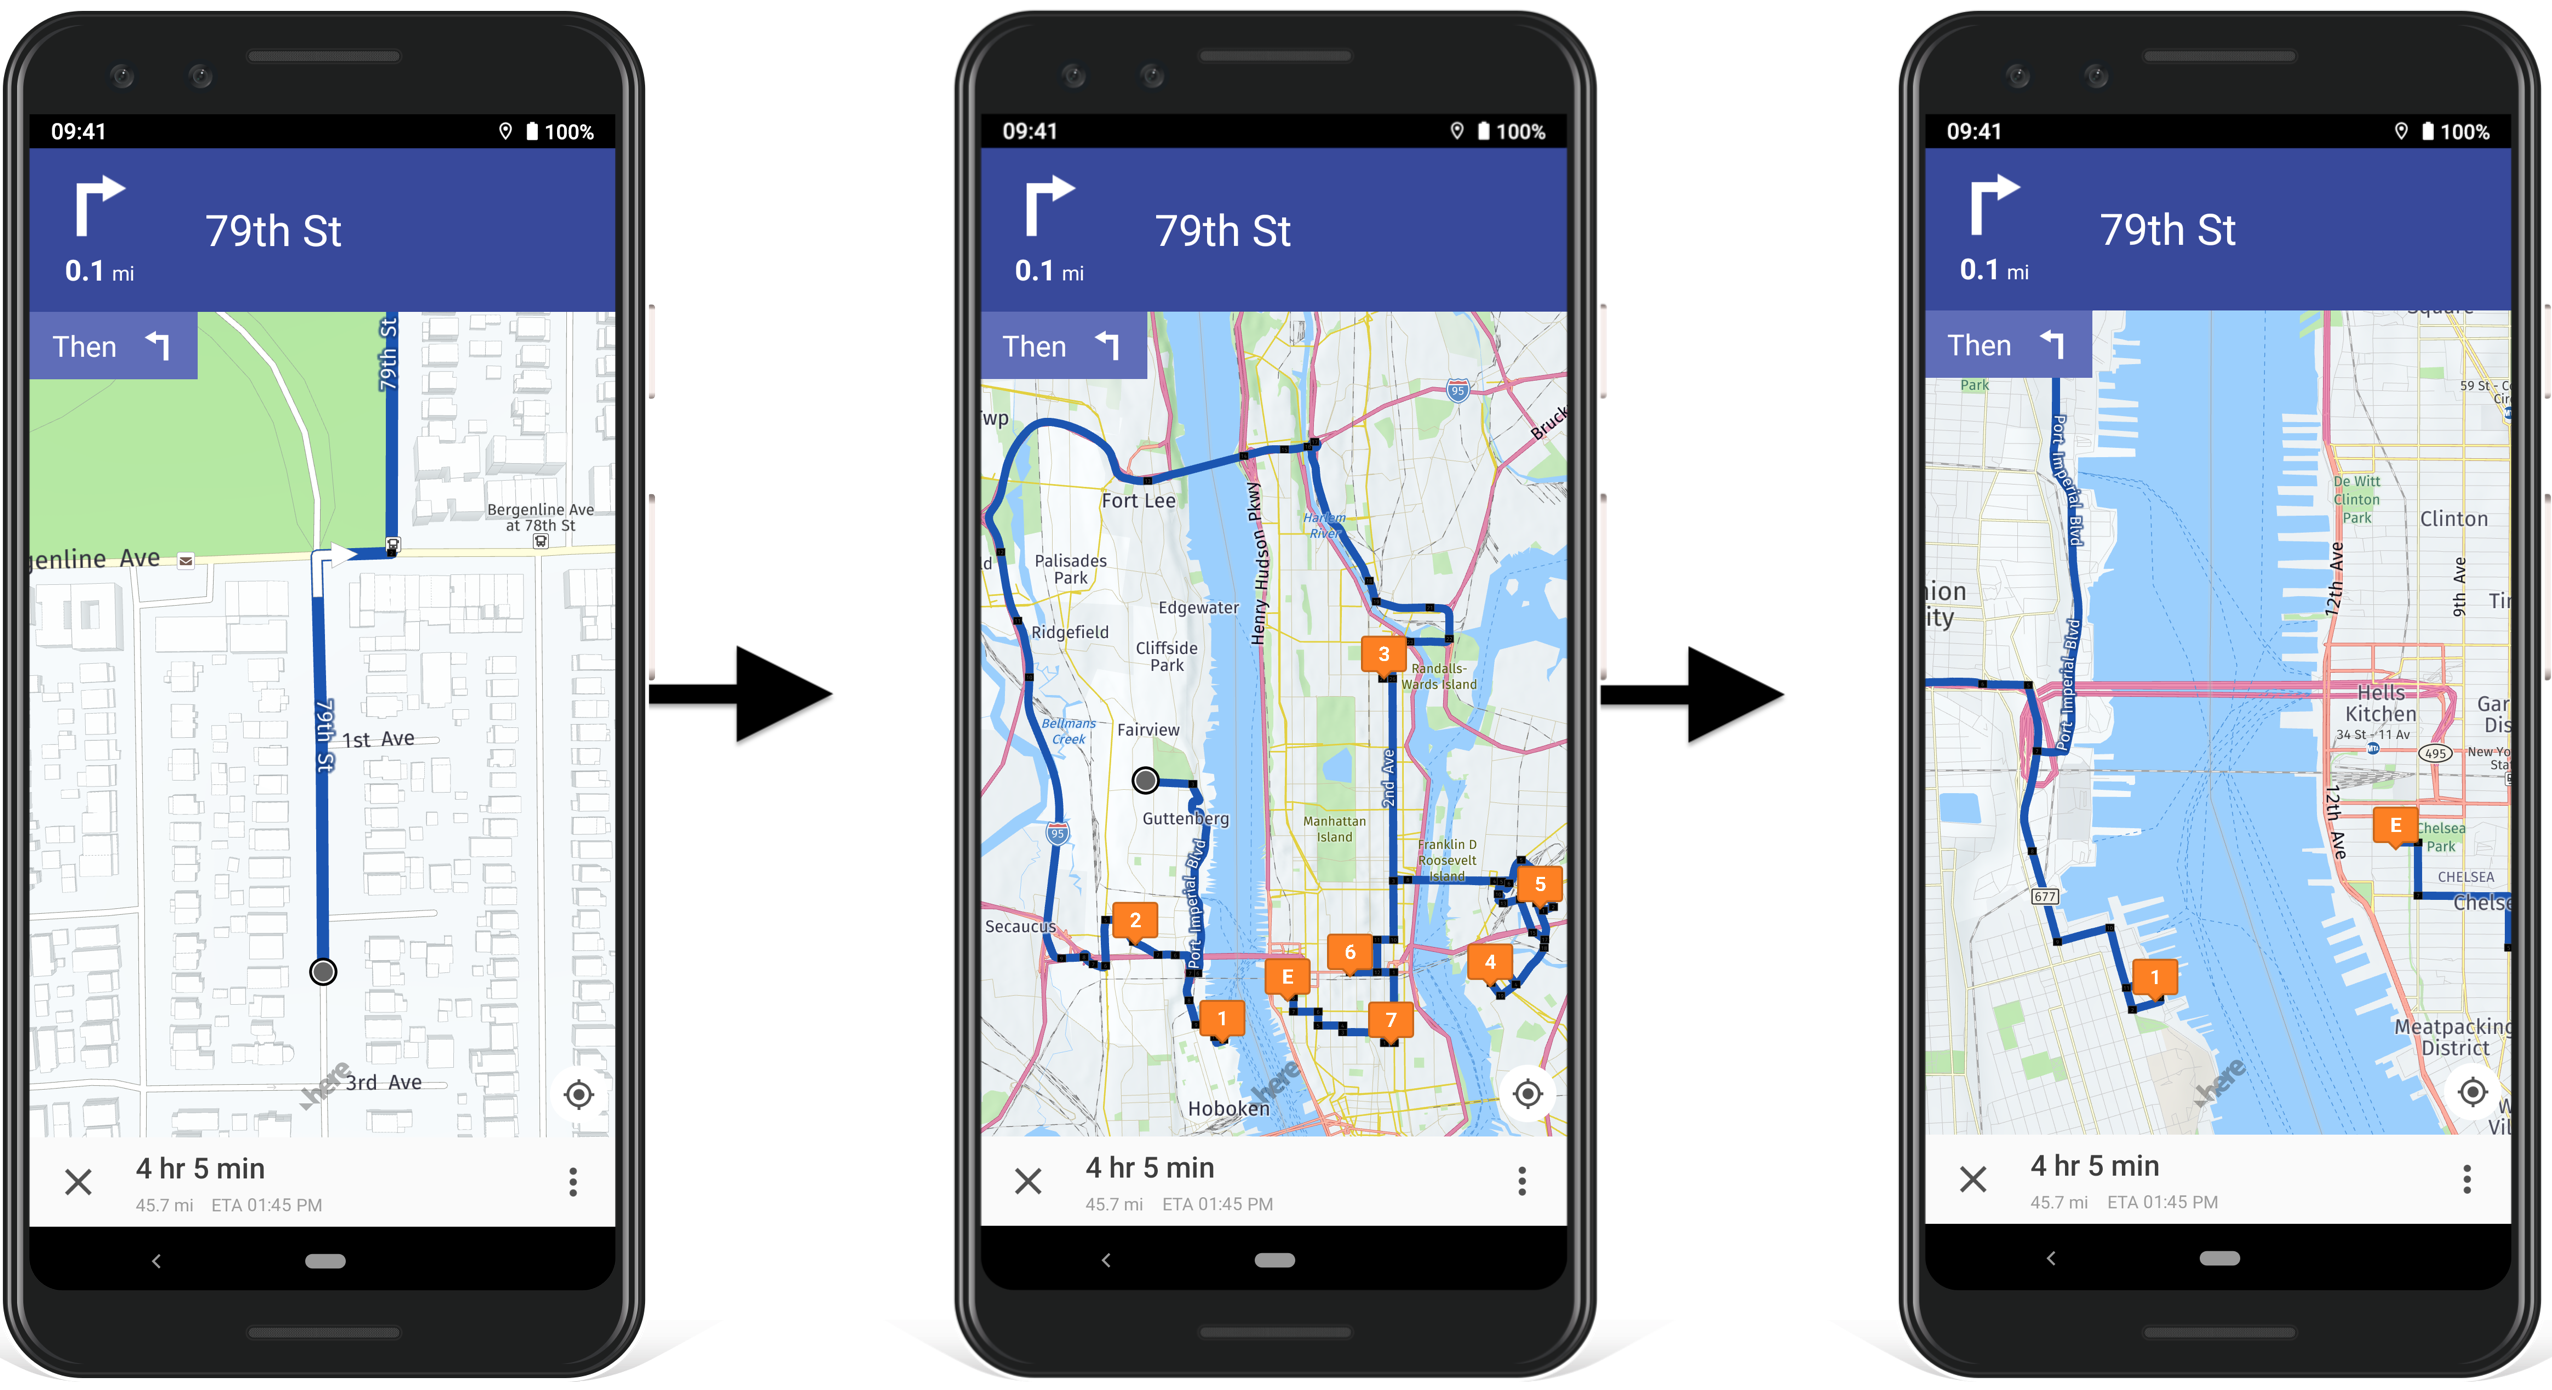 Use Route4Me's commercial in-app voice-guided navigation to navigate the opened commercial route.